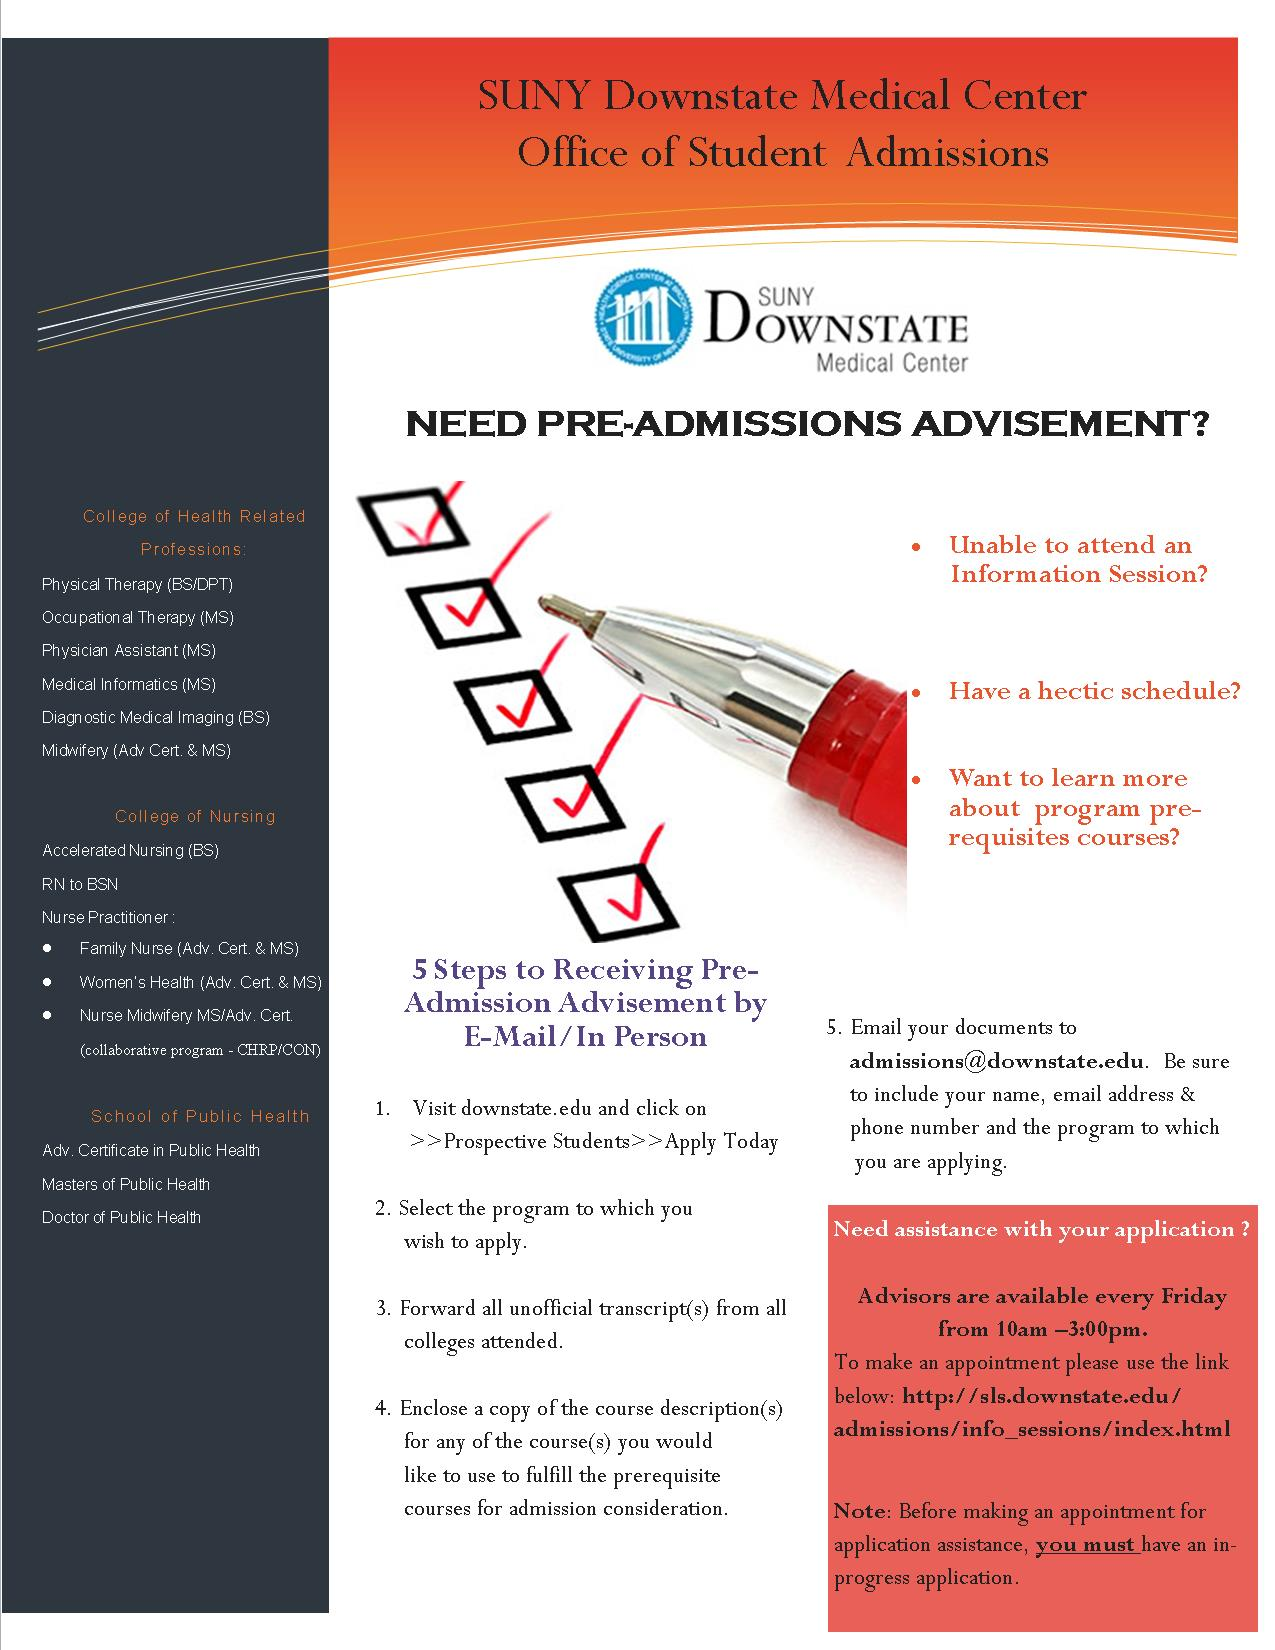 Application Assistance/Pre-Advisement Session